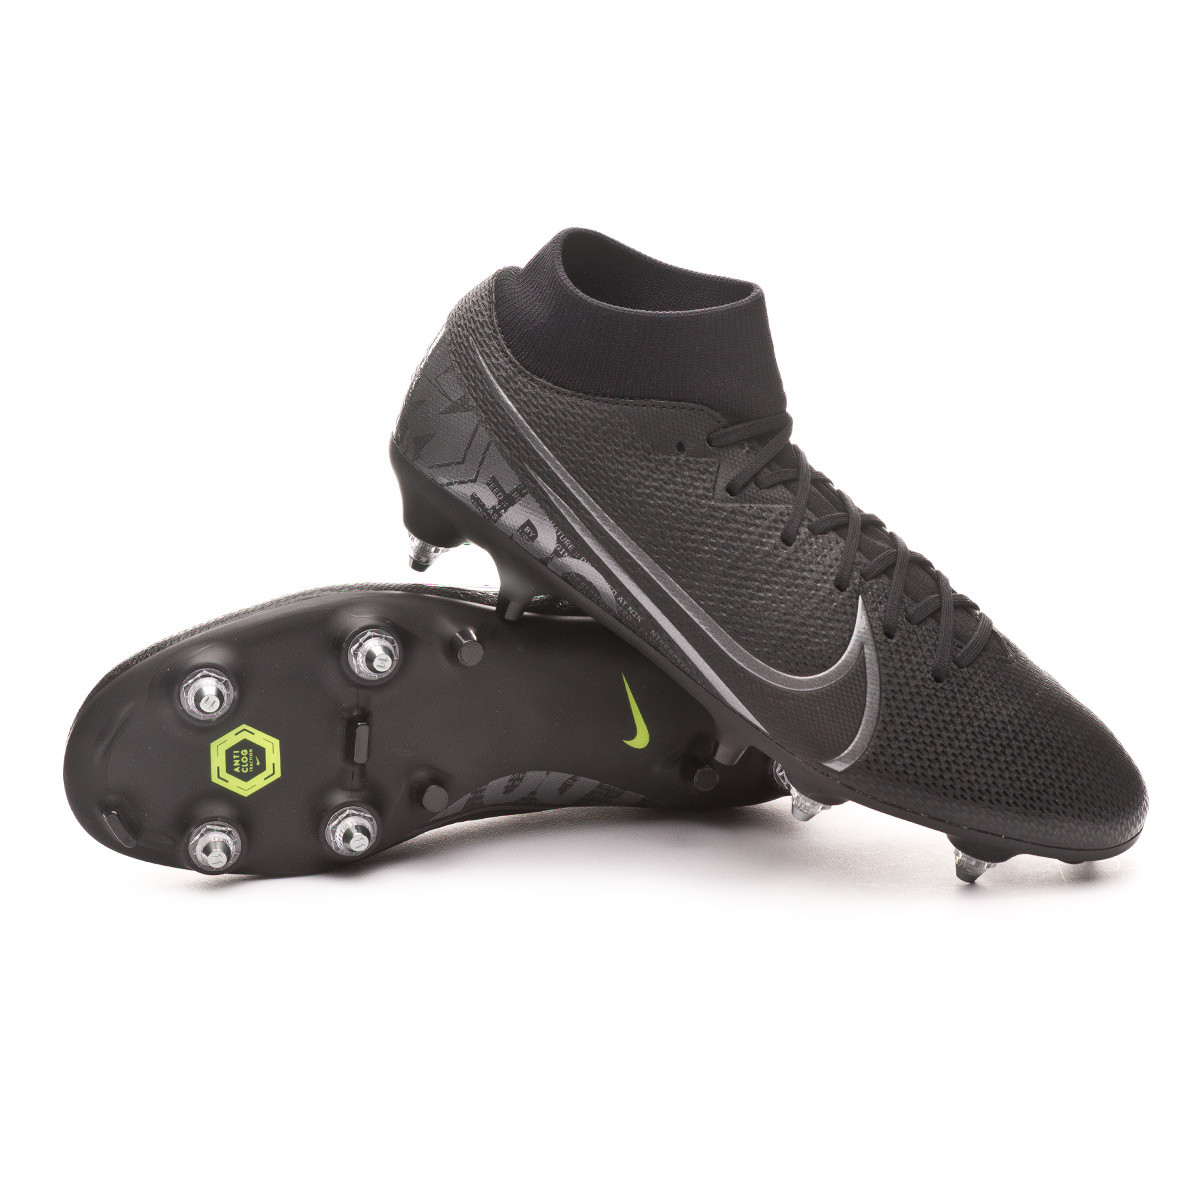 official photos b88b6 c7151 Bota Mercurial Superfly VII Academy ACC SG-Pro Black-Metallic cool grey